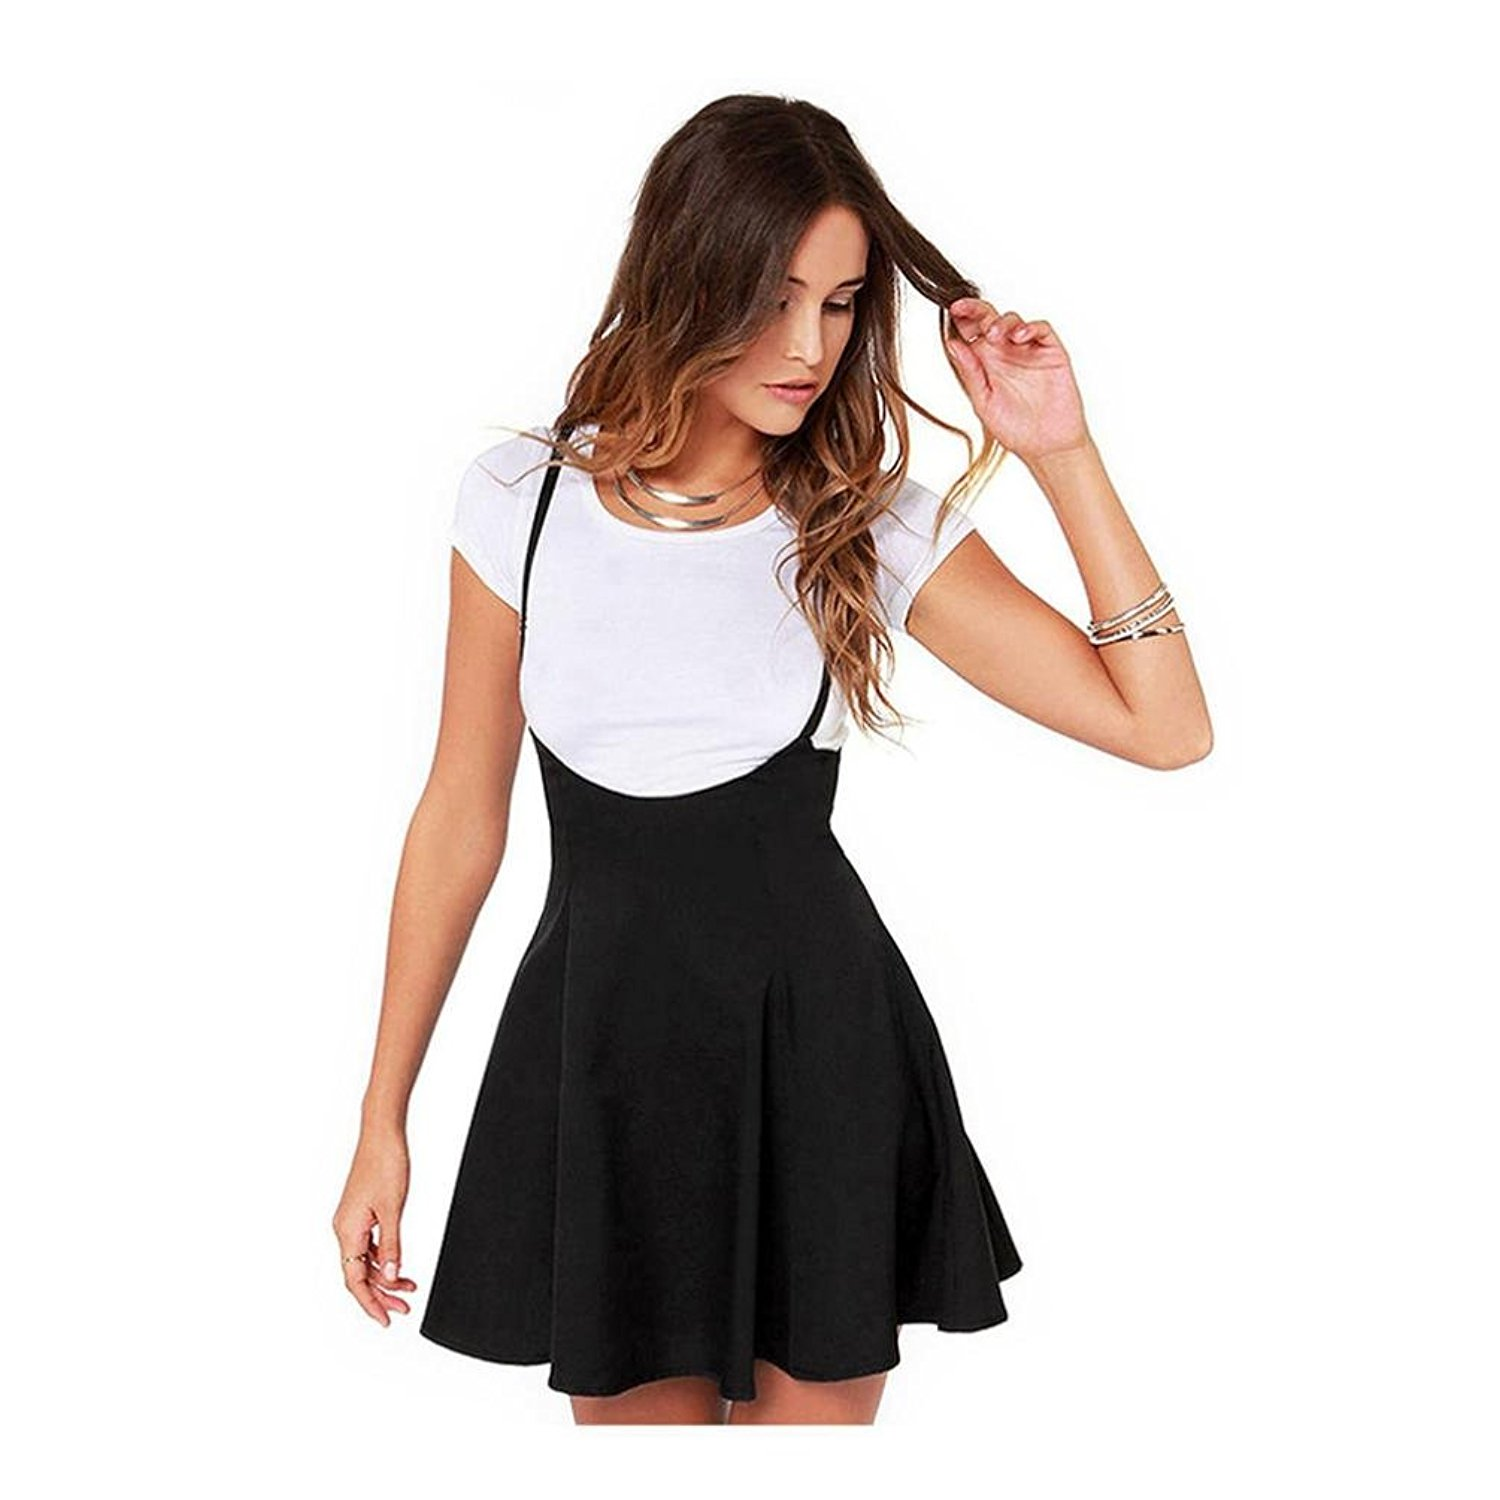 Ninasill Women Dress, ღ Hot Sale ღ ! Fashion Black Skirt With Shoulder Straps Pleated Dress T-Shirt Skirt Blouse Tops